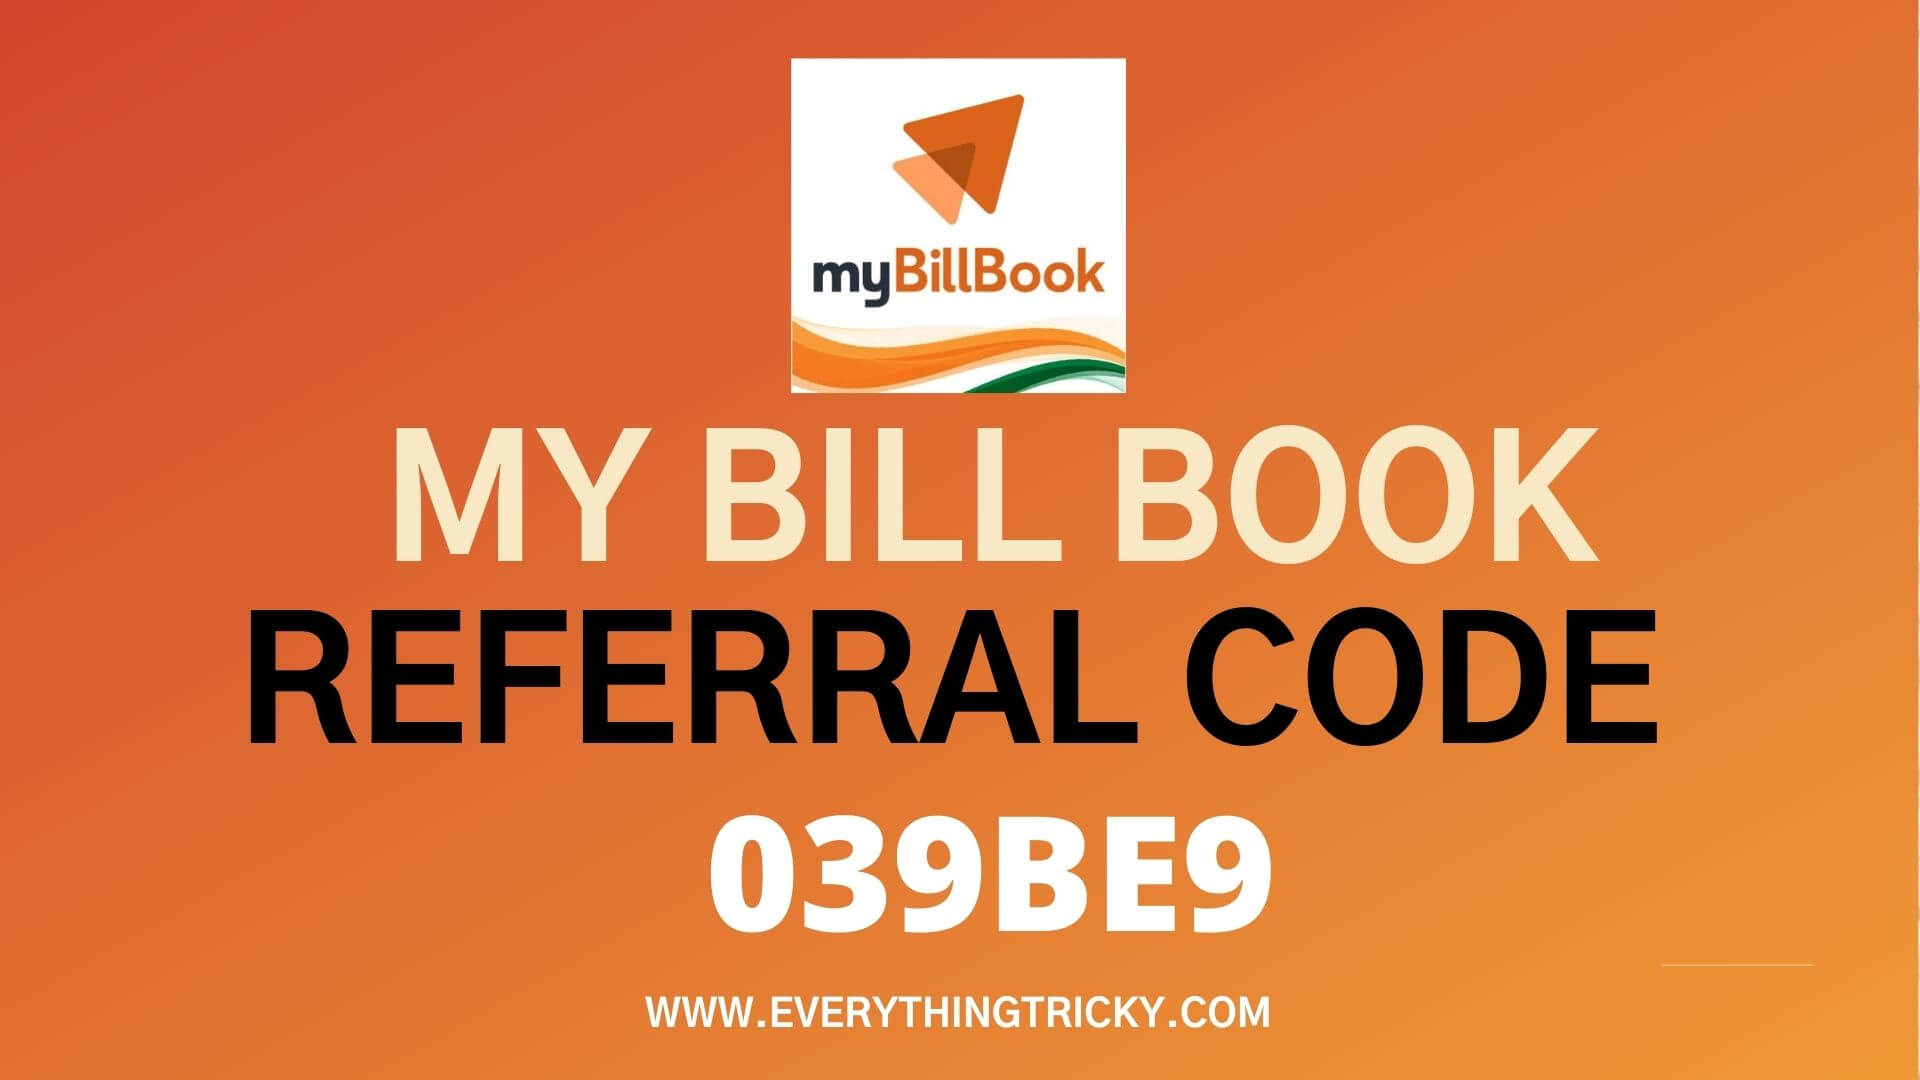 My Bill book referral code